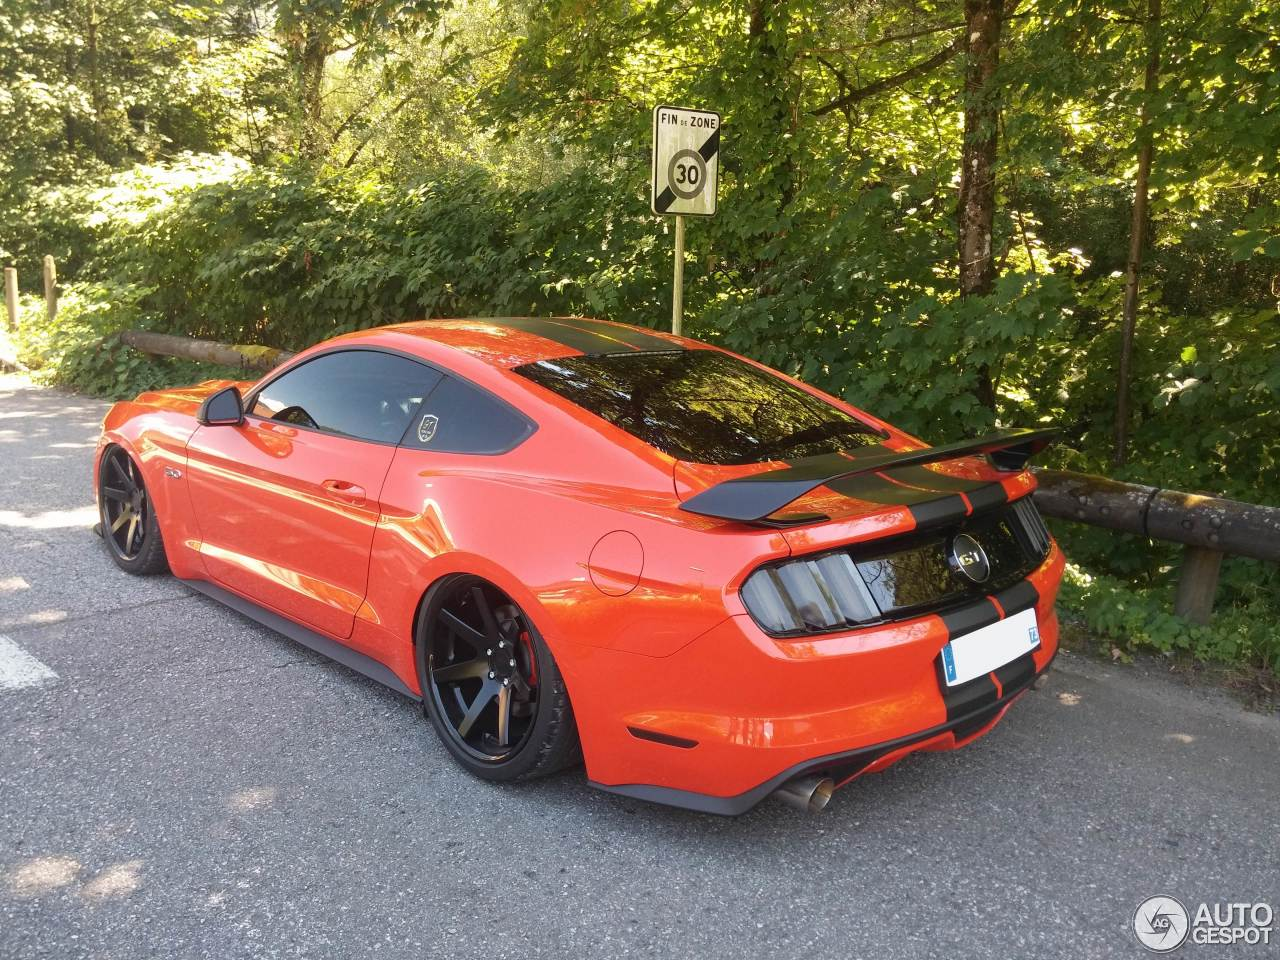 Ford Mustang GT 2015 - 14 August 2016 - Autogespot